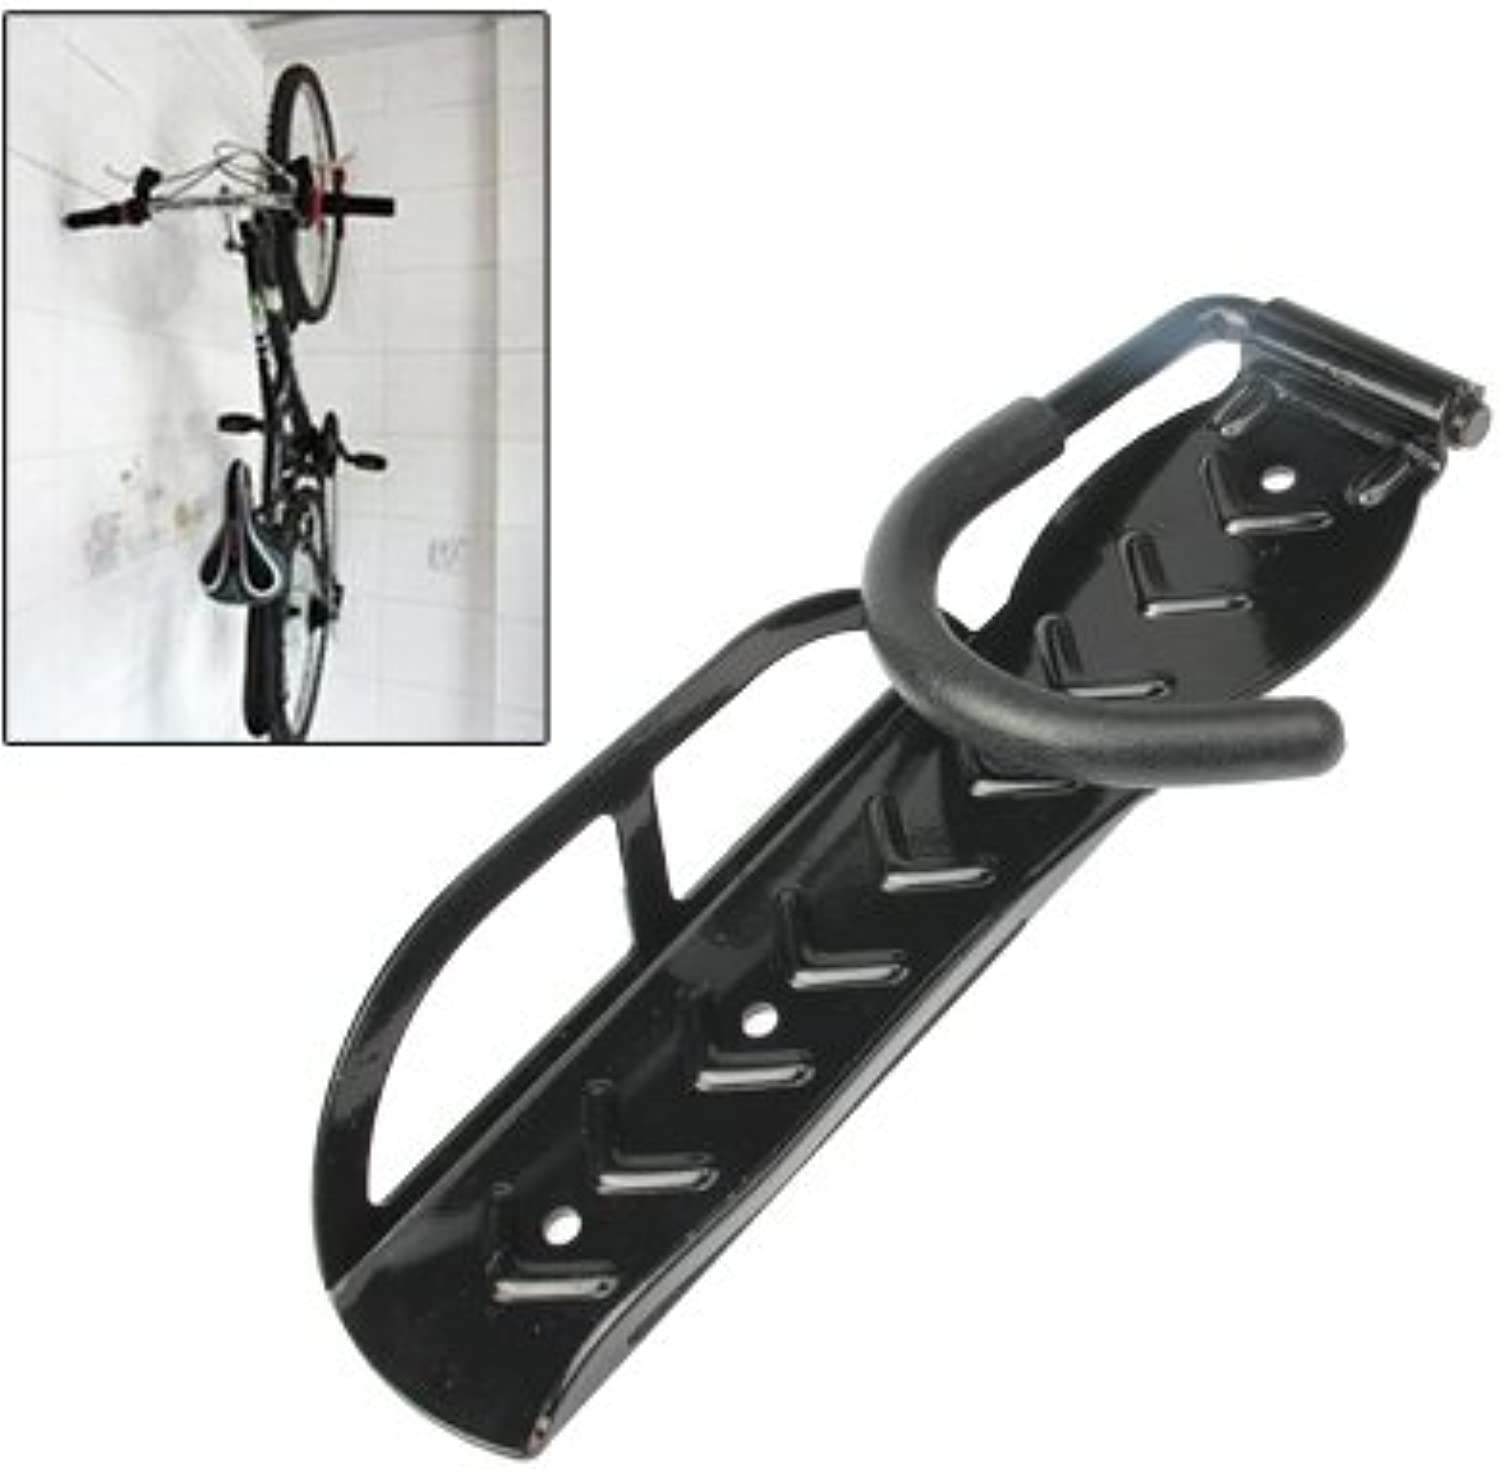 Cycling Equipment Bicycle Wall Hook Bicycle Frame Bicycle Display for All Types of Mountain Bikes, Bicycles, etc. Safe and Practical